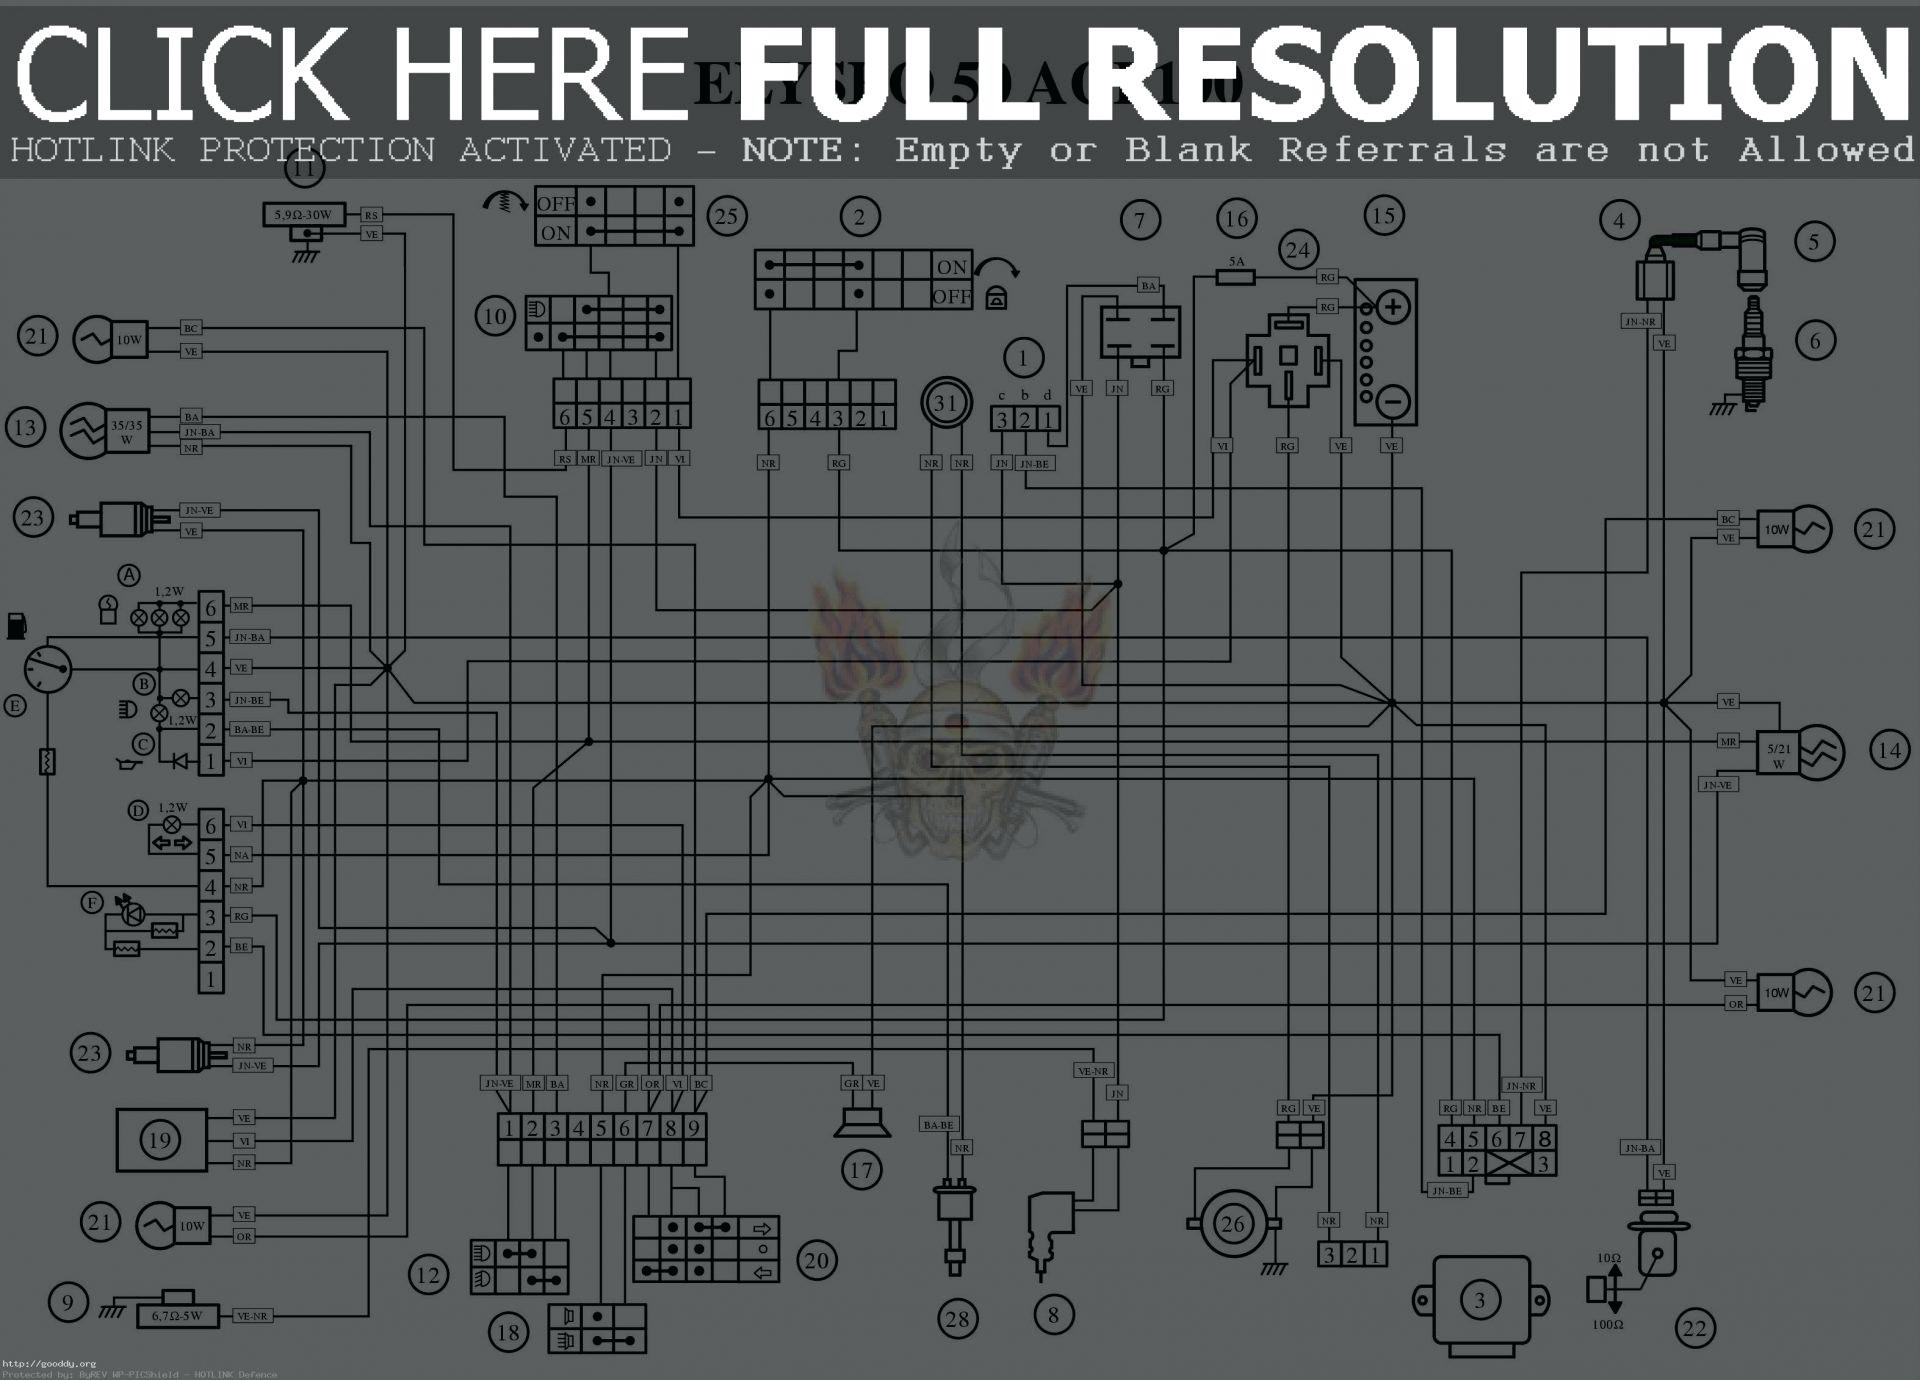 Peugeot 206 engine diagram peugeot engine diagrams 206 hdi diagram peugeot 206 engine diagram peugeot engine diagrams 206 hdi diagram motor wiring sensor location asfbconference2016 Image collections